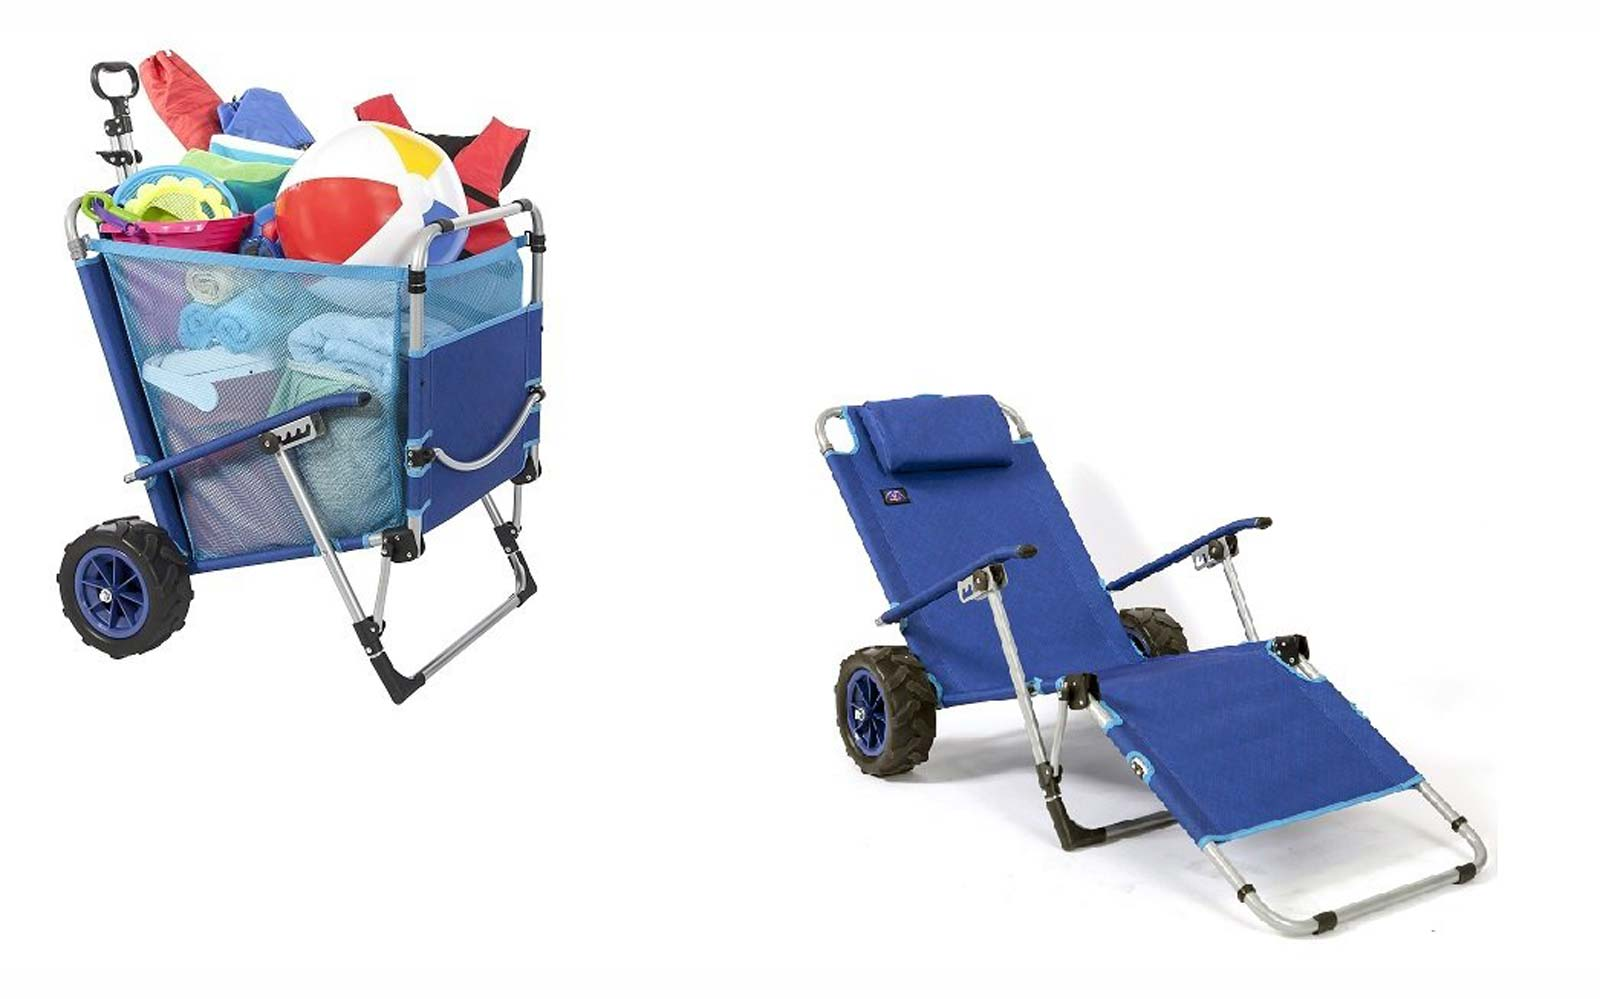 This Beach Chair Converts Into a Wagon With Sand-friendly Wheels